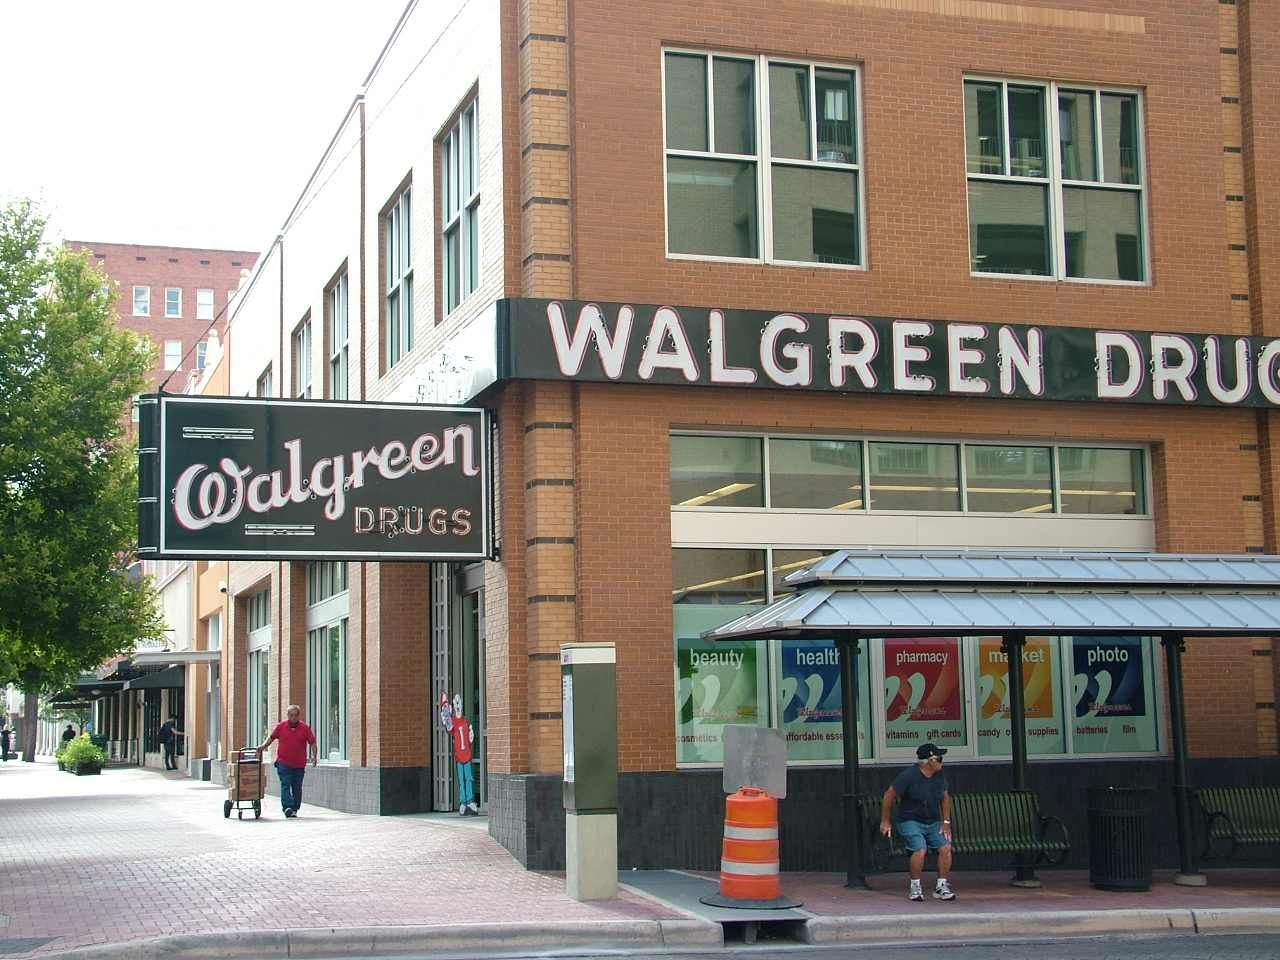 best images about walgreens the old amazing 17 best images about walgreens the old amazing photos and sushi bars